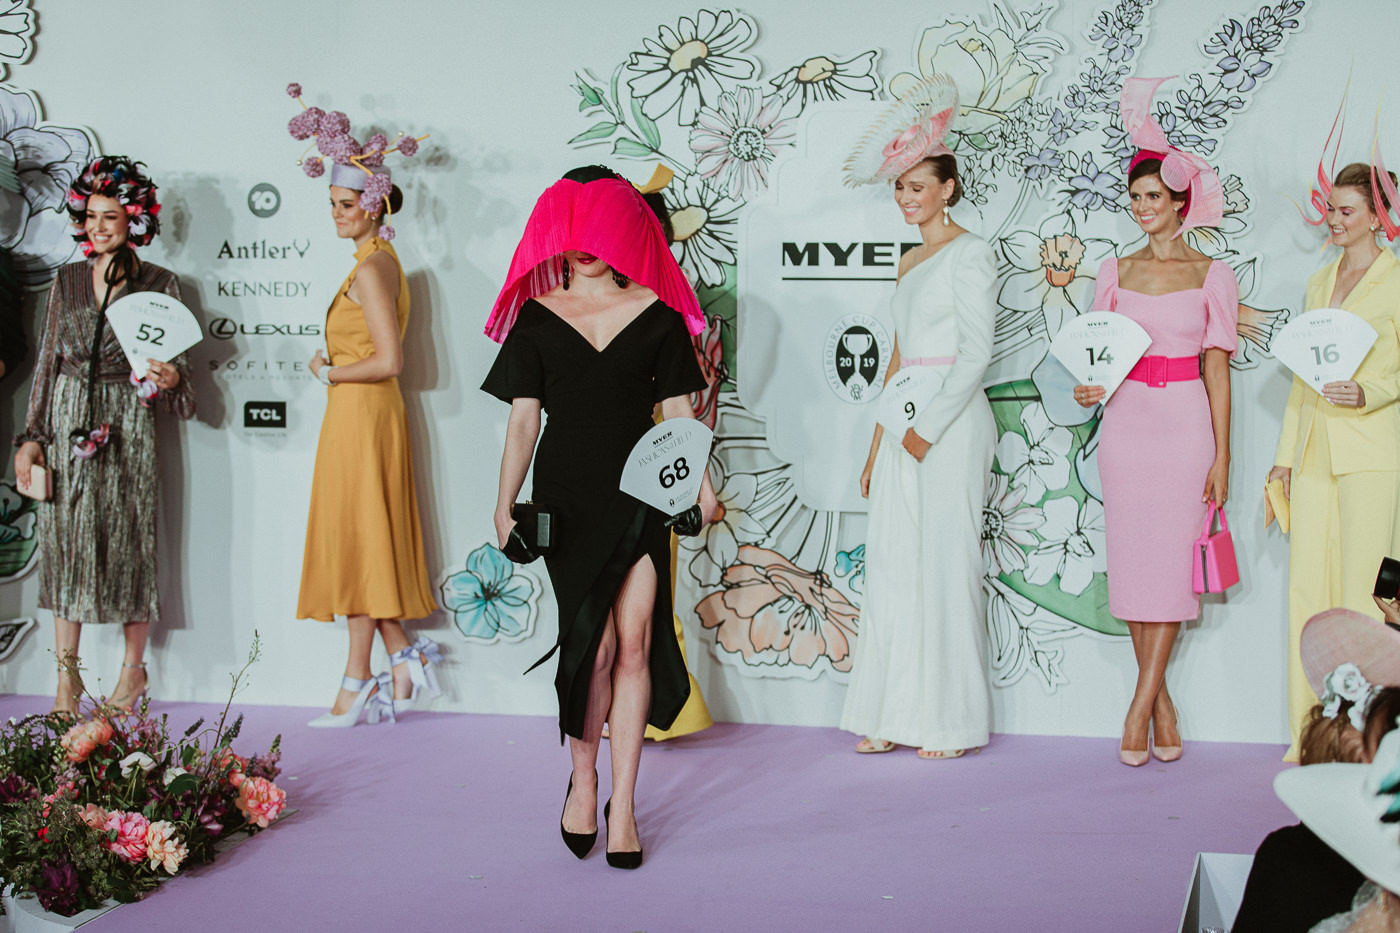 award winning millinery - model on stage - runway fashion and millinery